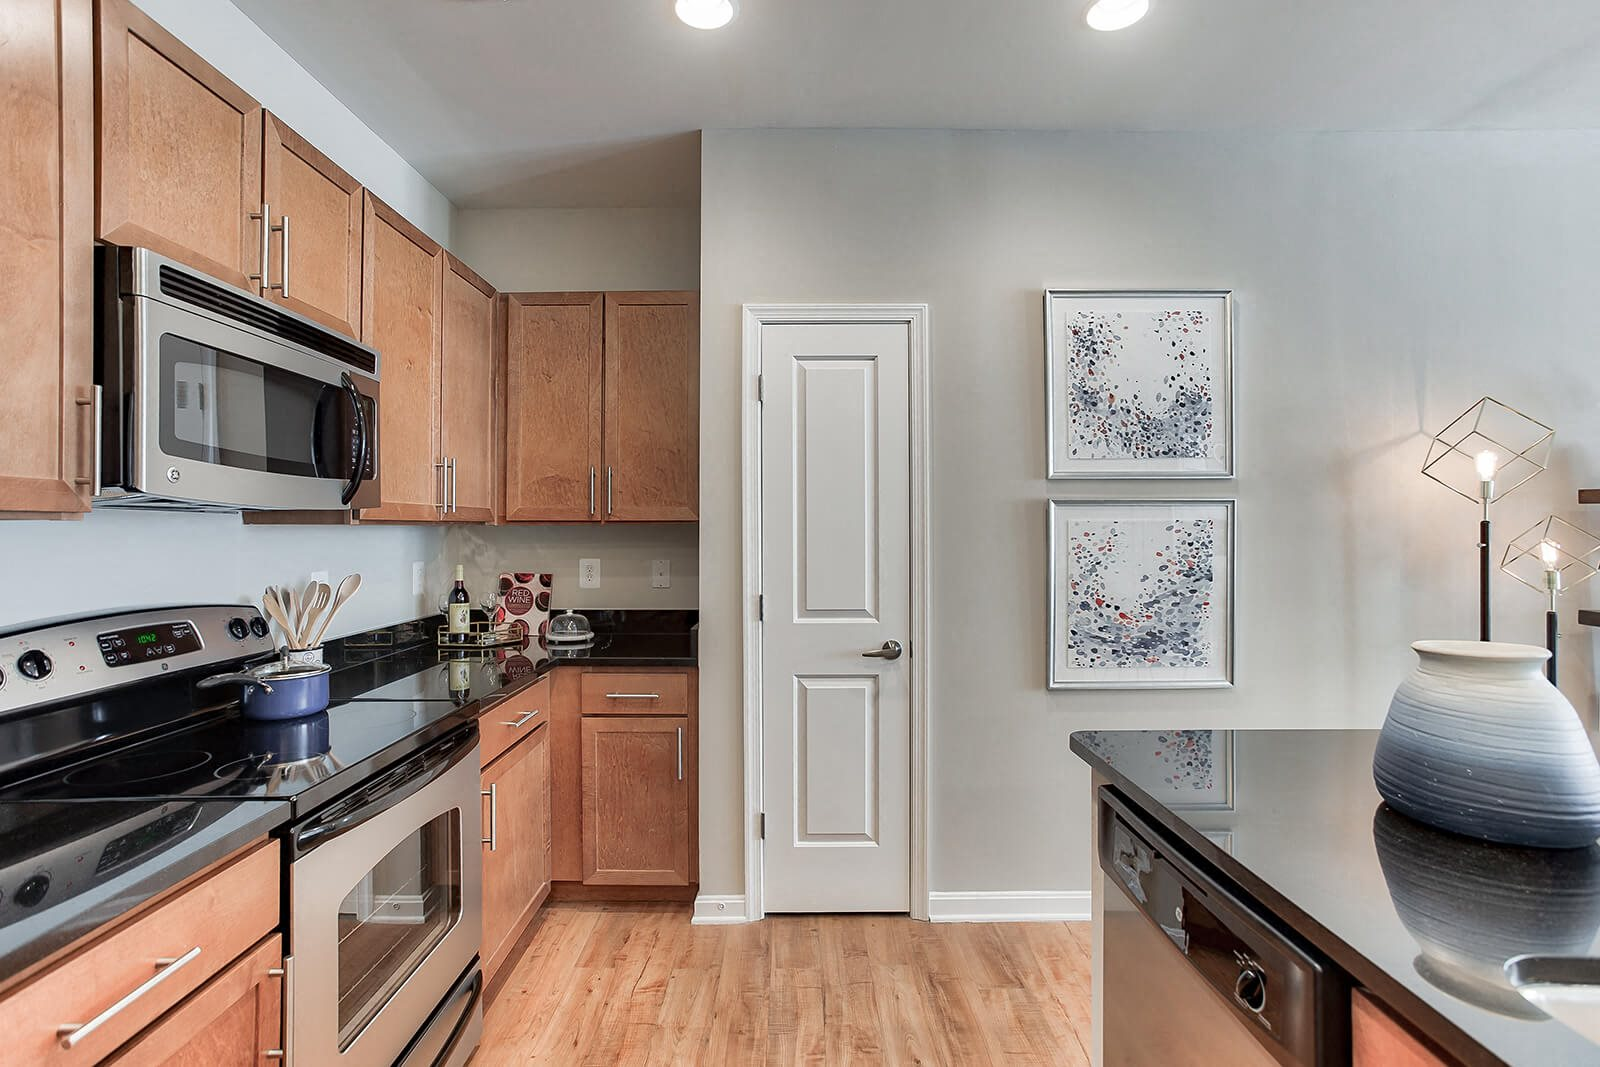 Stainless Steel Appliances And Wood Cabinetry in Kitchens at The Ridgewood by Windsor, Fairfax, Virginia